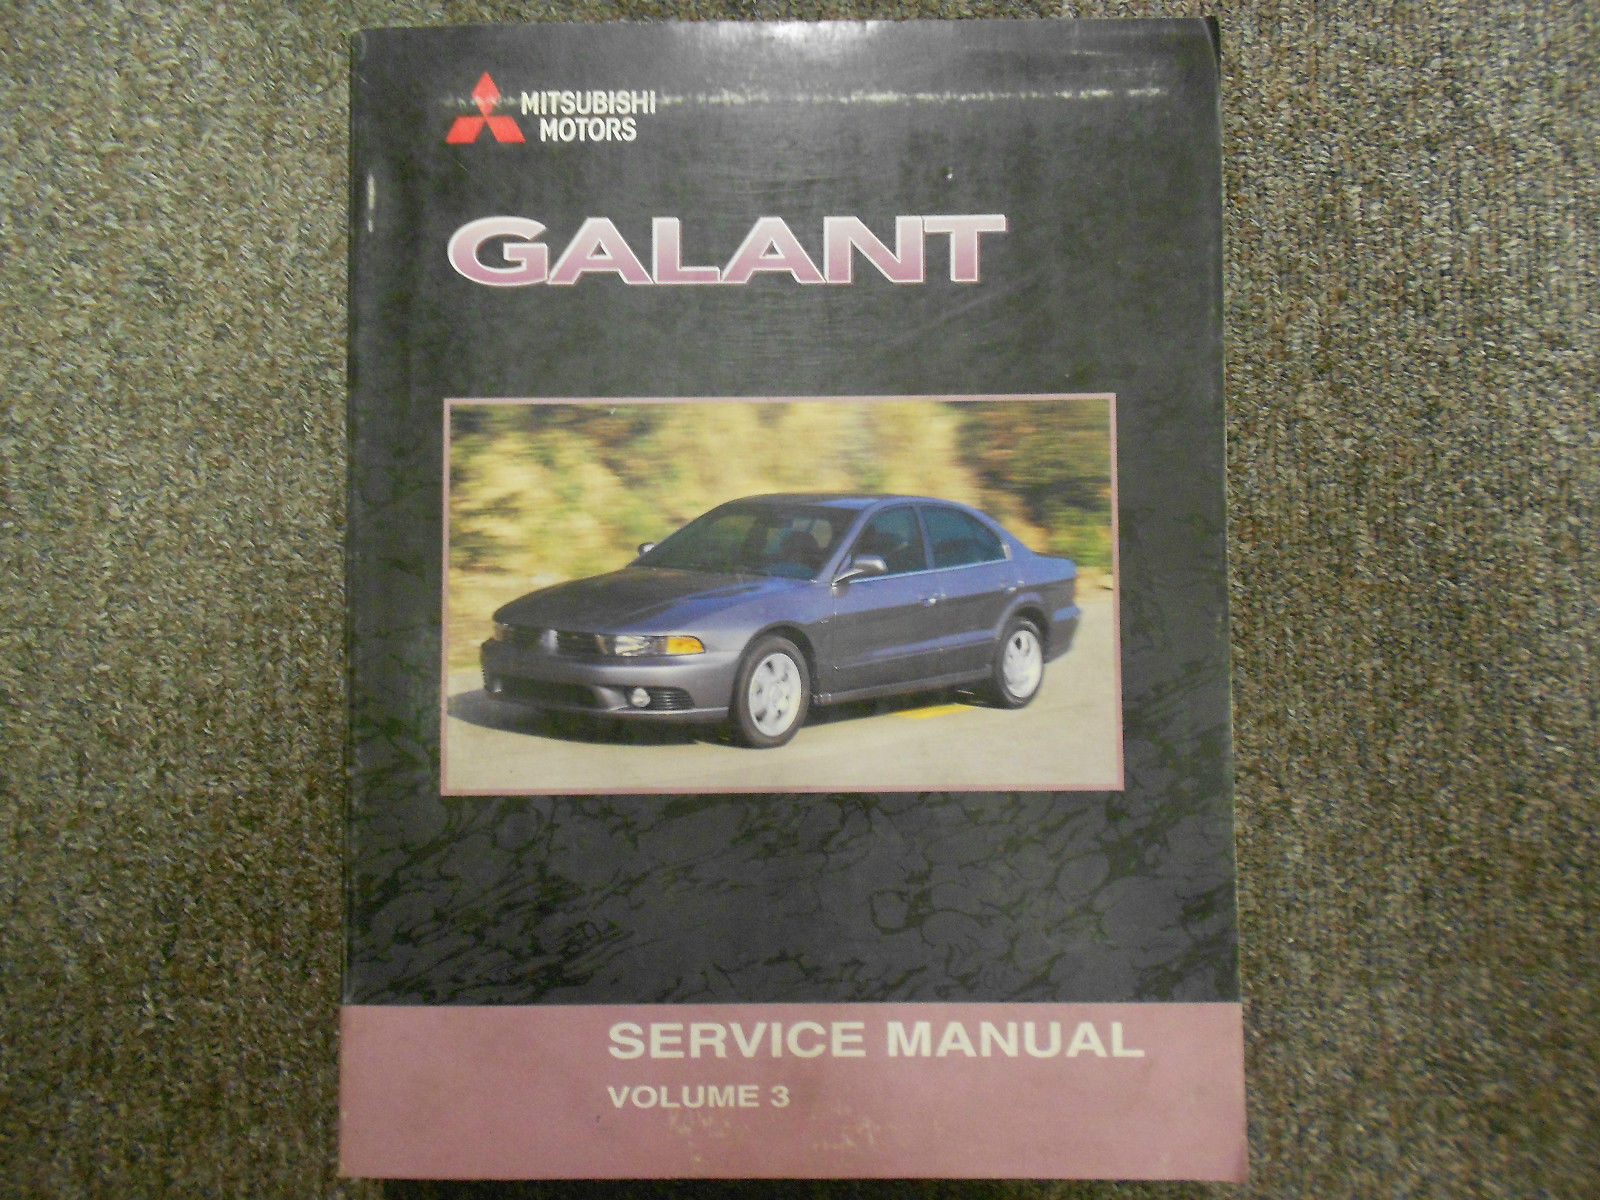 2002 MITSUBISHI Galant Service Manual FACTORY OEM VOLUME 3 FACTORY OEM BOOK 02 image 1